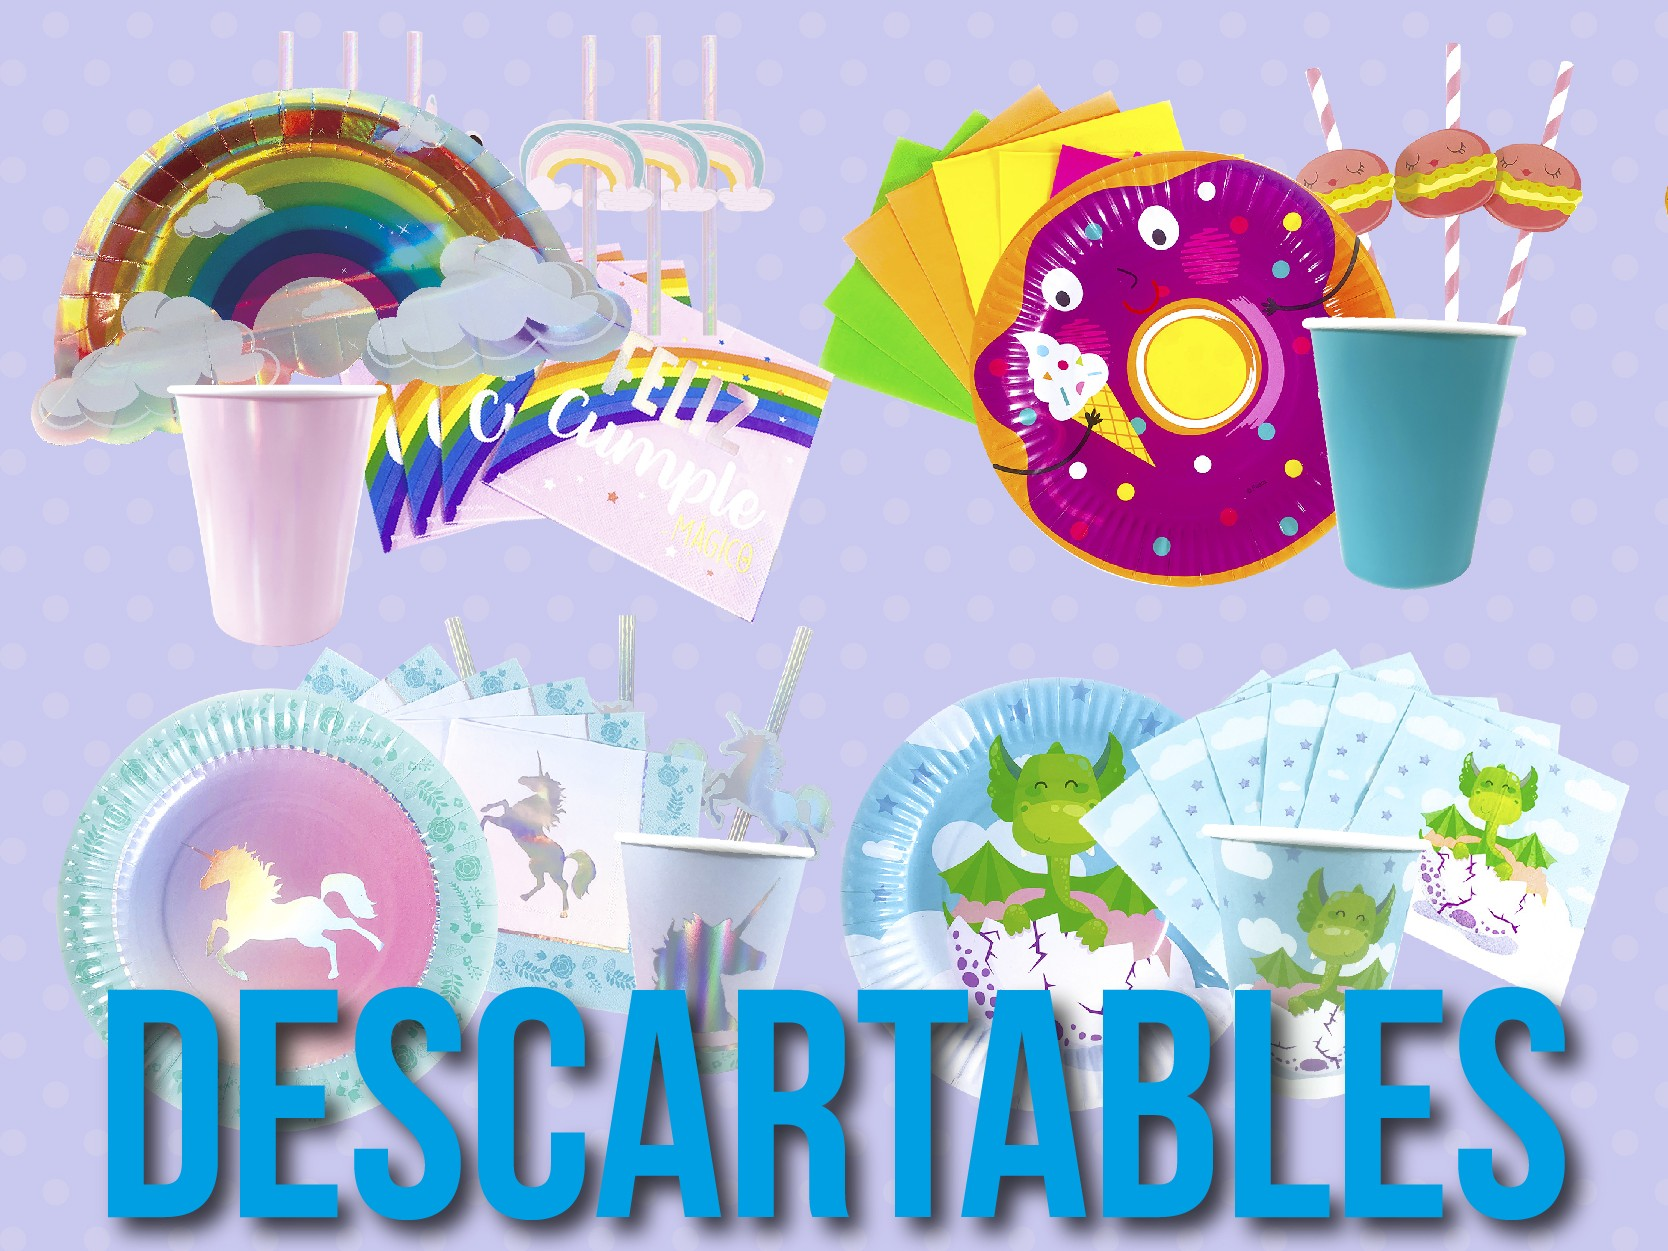 DESCARTABLES